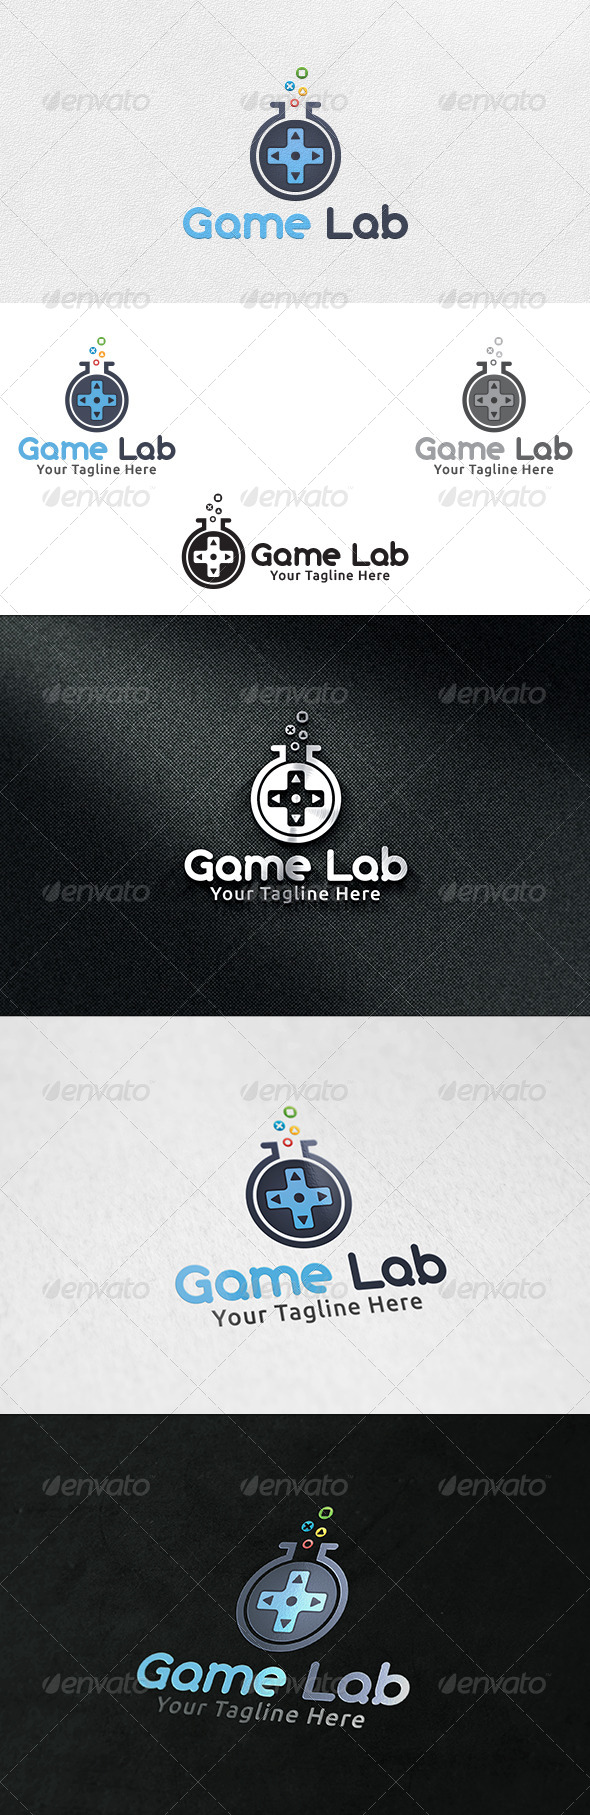 Game Lab - Logo Template